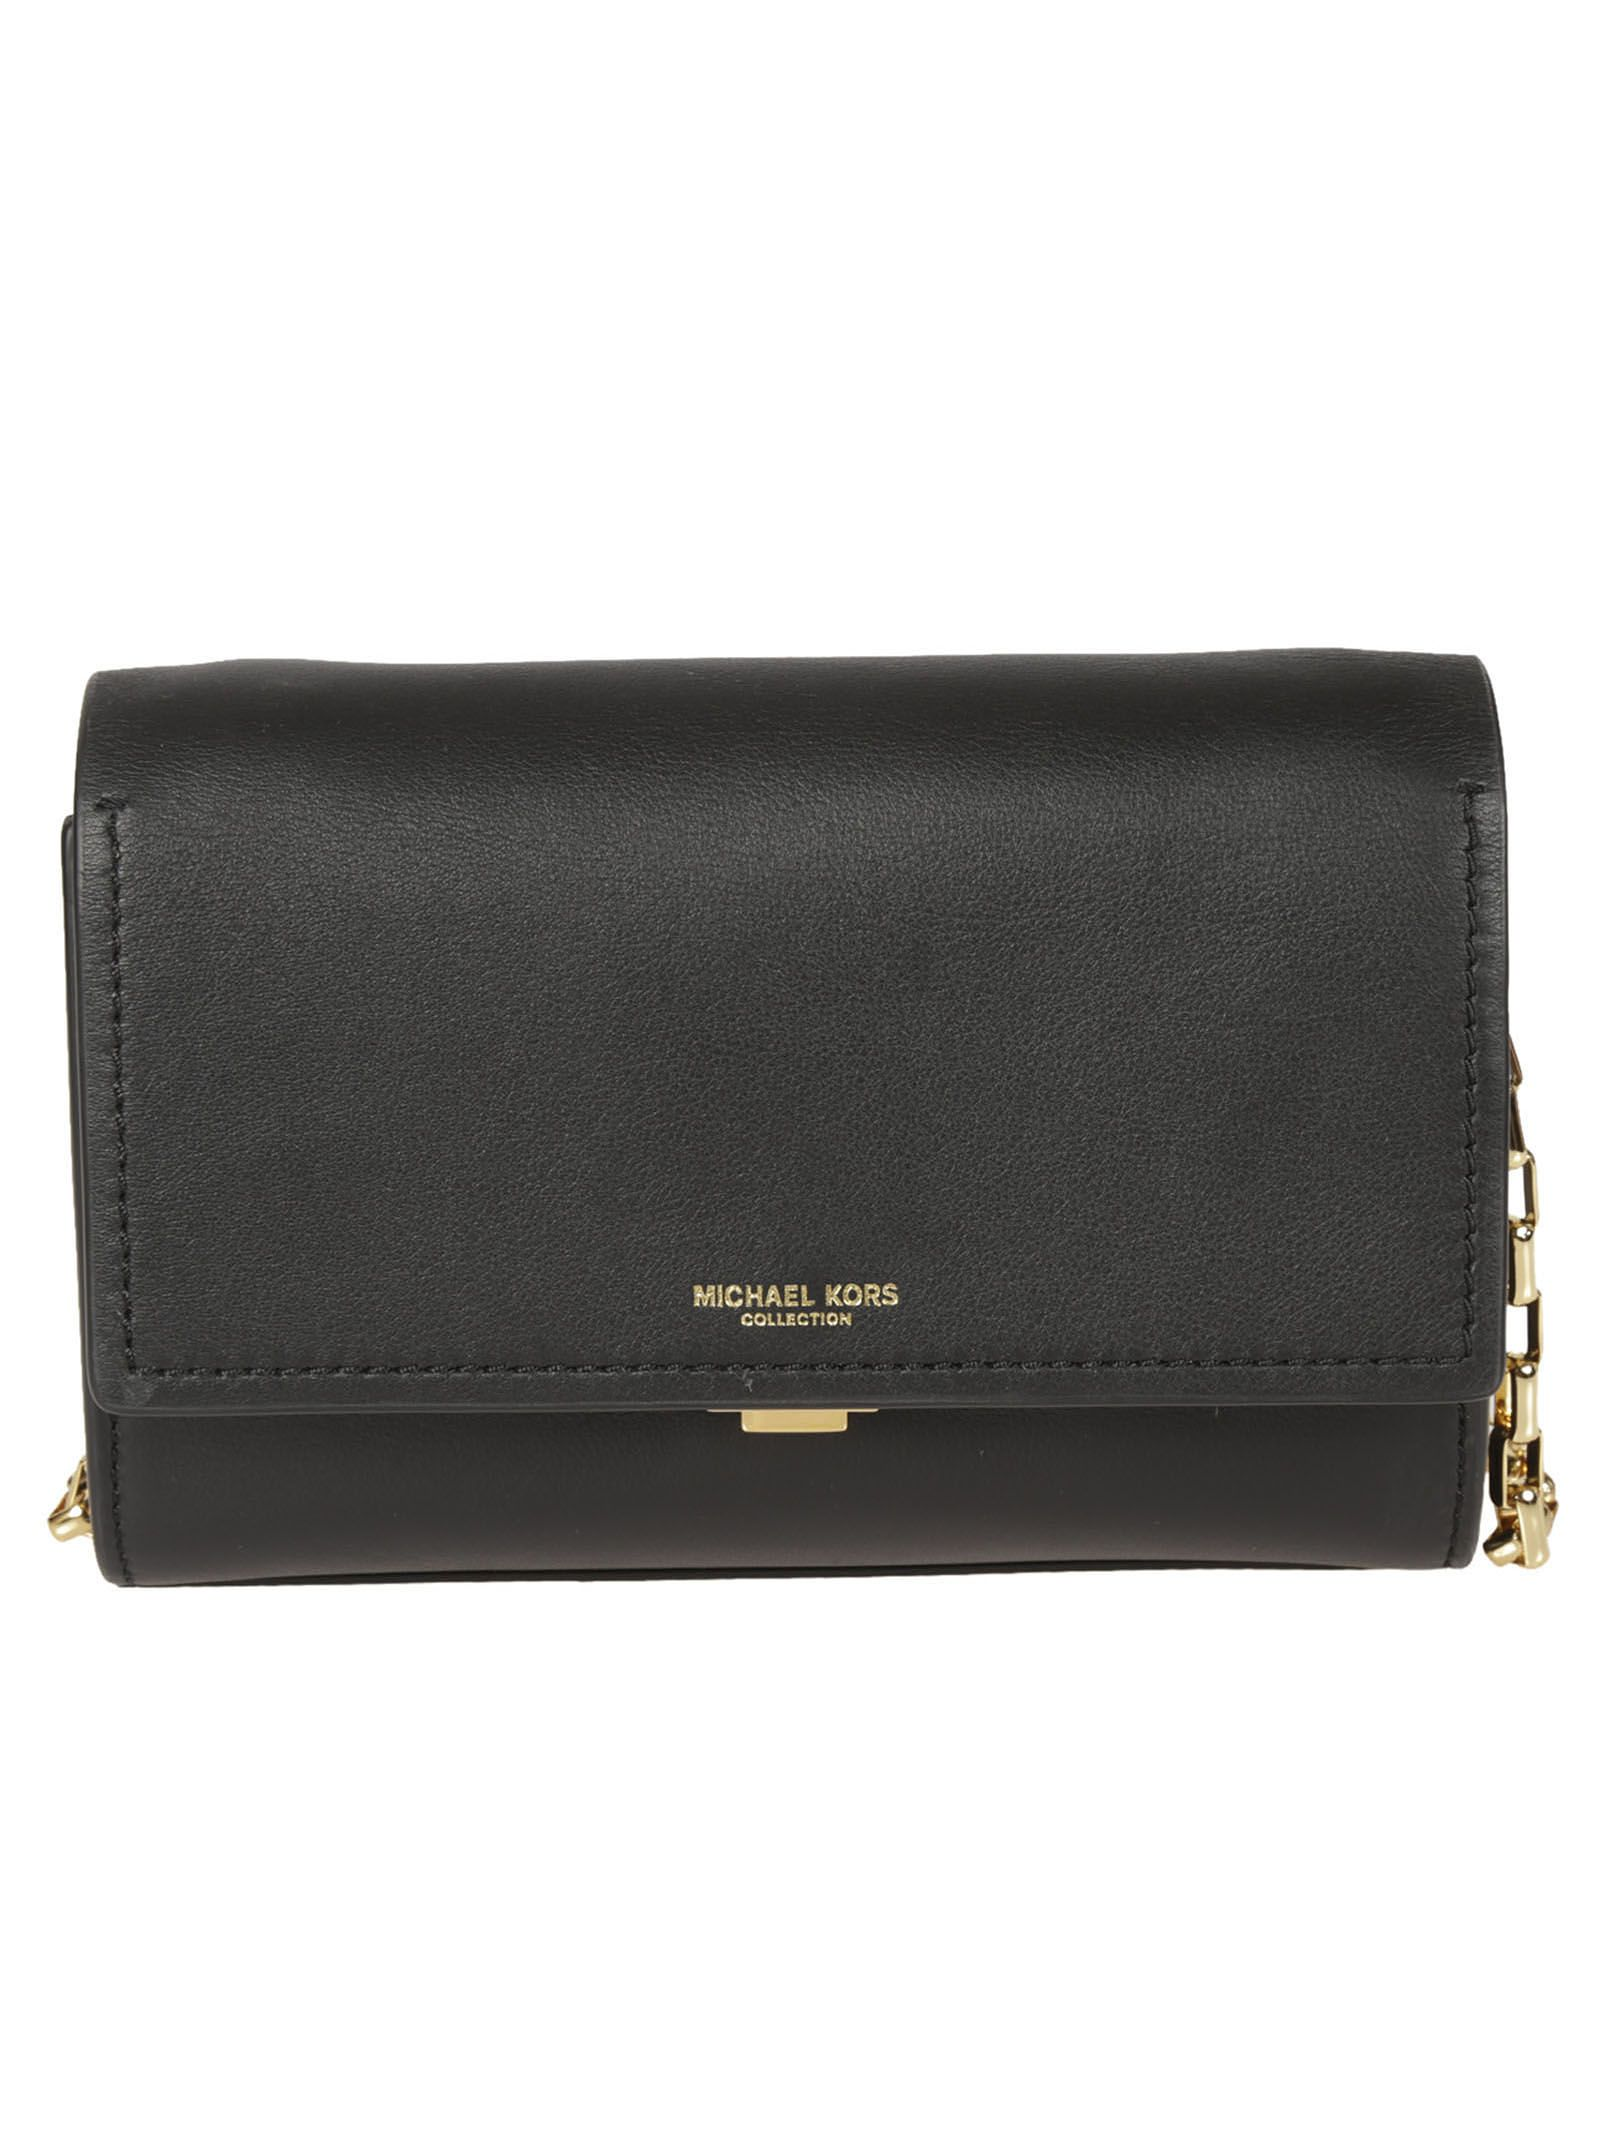 Small Yasmeen Clutch from Michael Kors: Black Small Yasmeen Clutch with flap closure, silver hardware, optional cross body chain strap, exterior, slip pocket, interior zip pocket and two card slots.